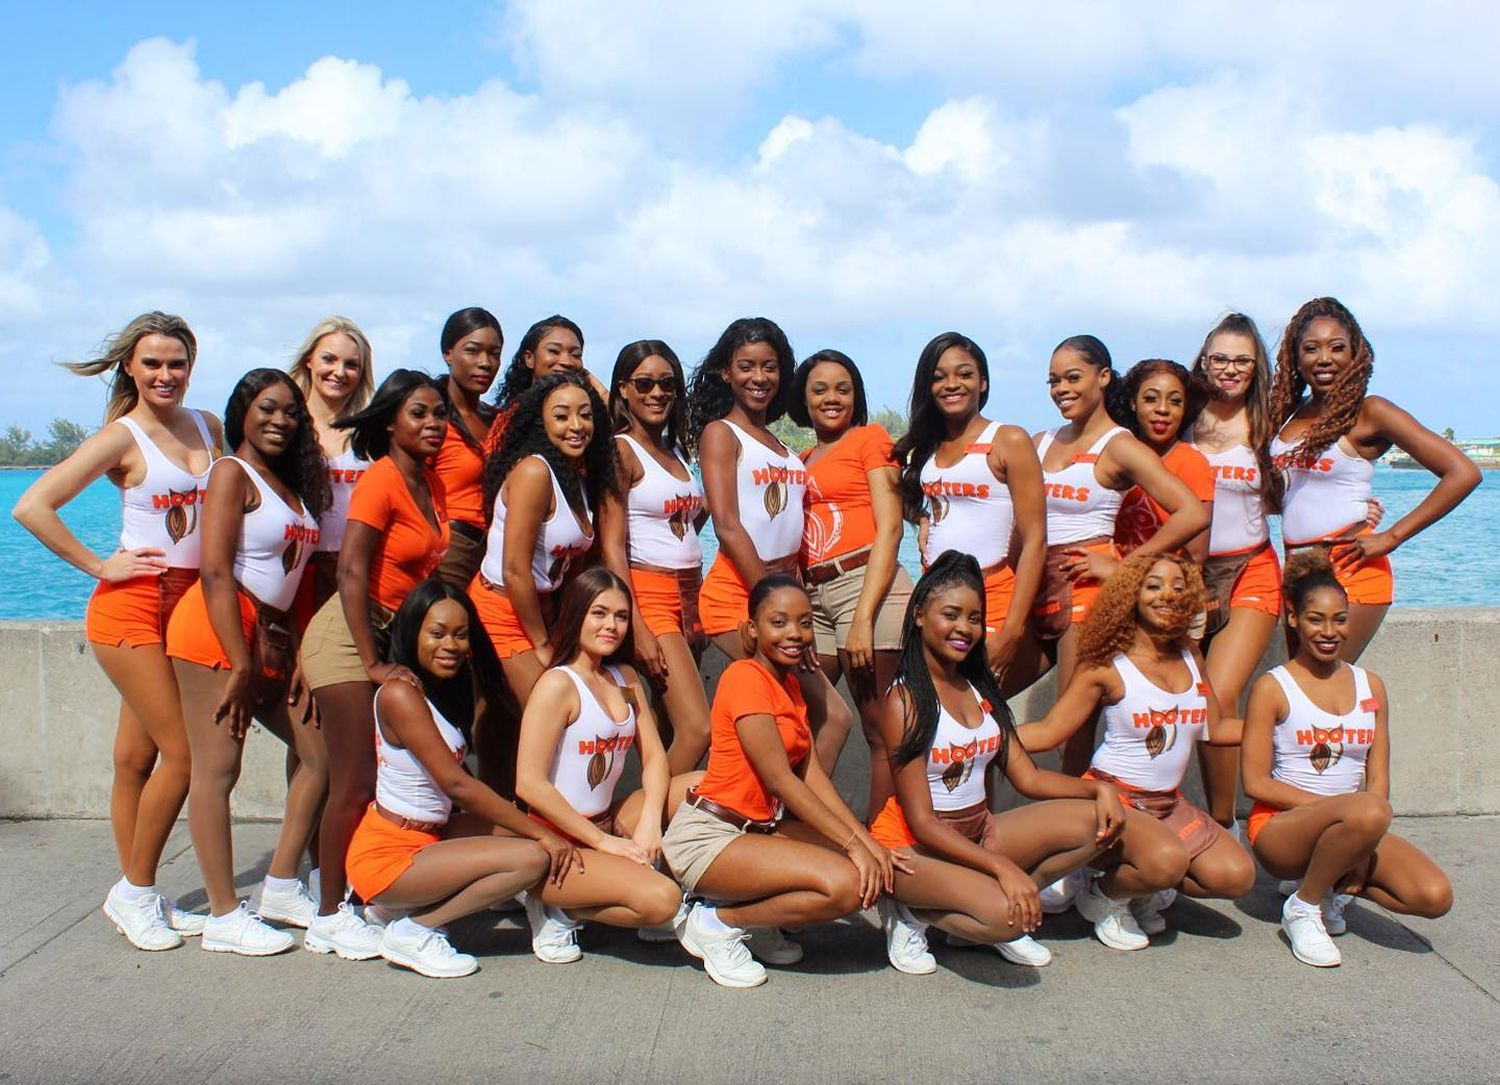 Hooters Opens First Location in Nassau, Bahamas